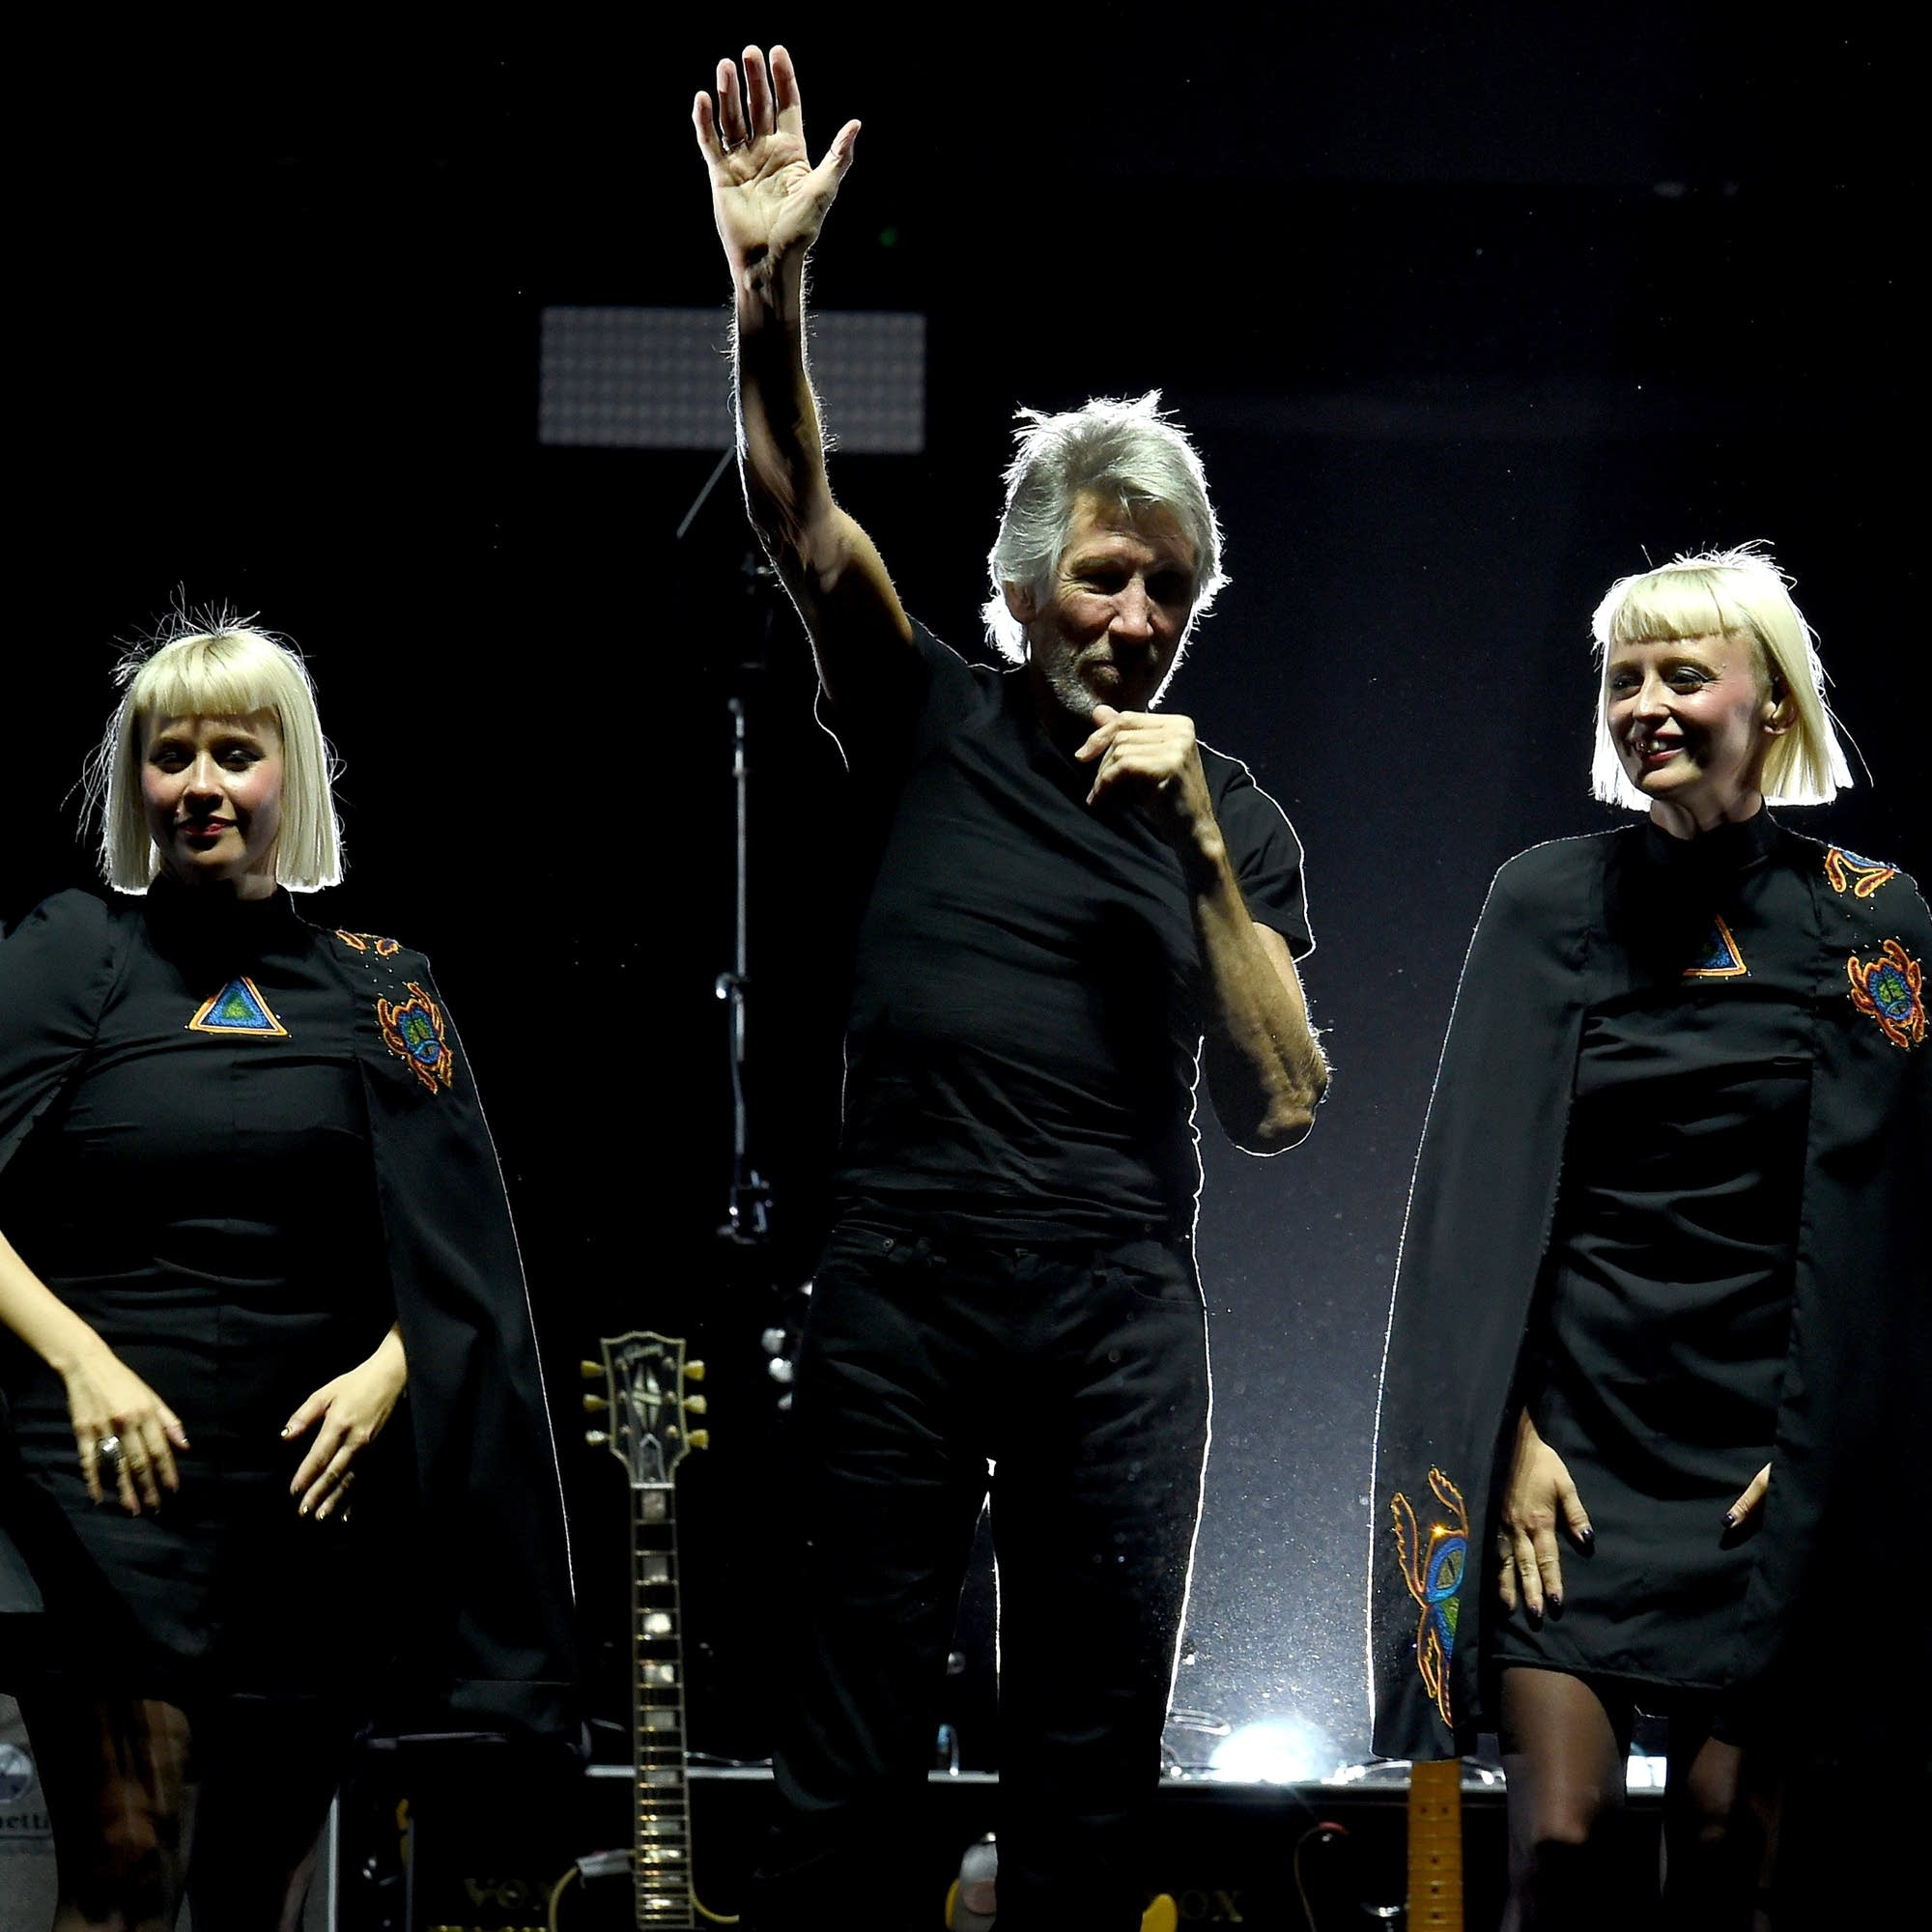 Jess Wolfe and Holly Laessig of Lucius perform with Roger Waters